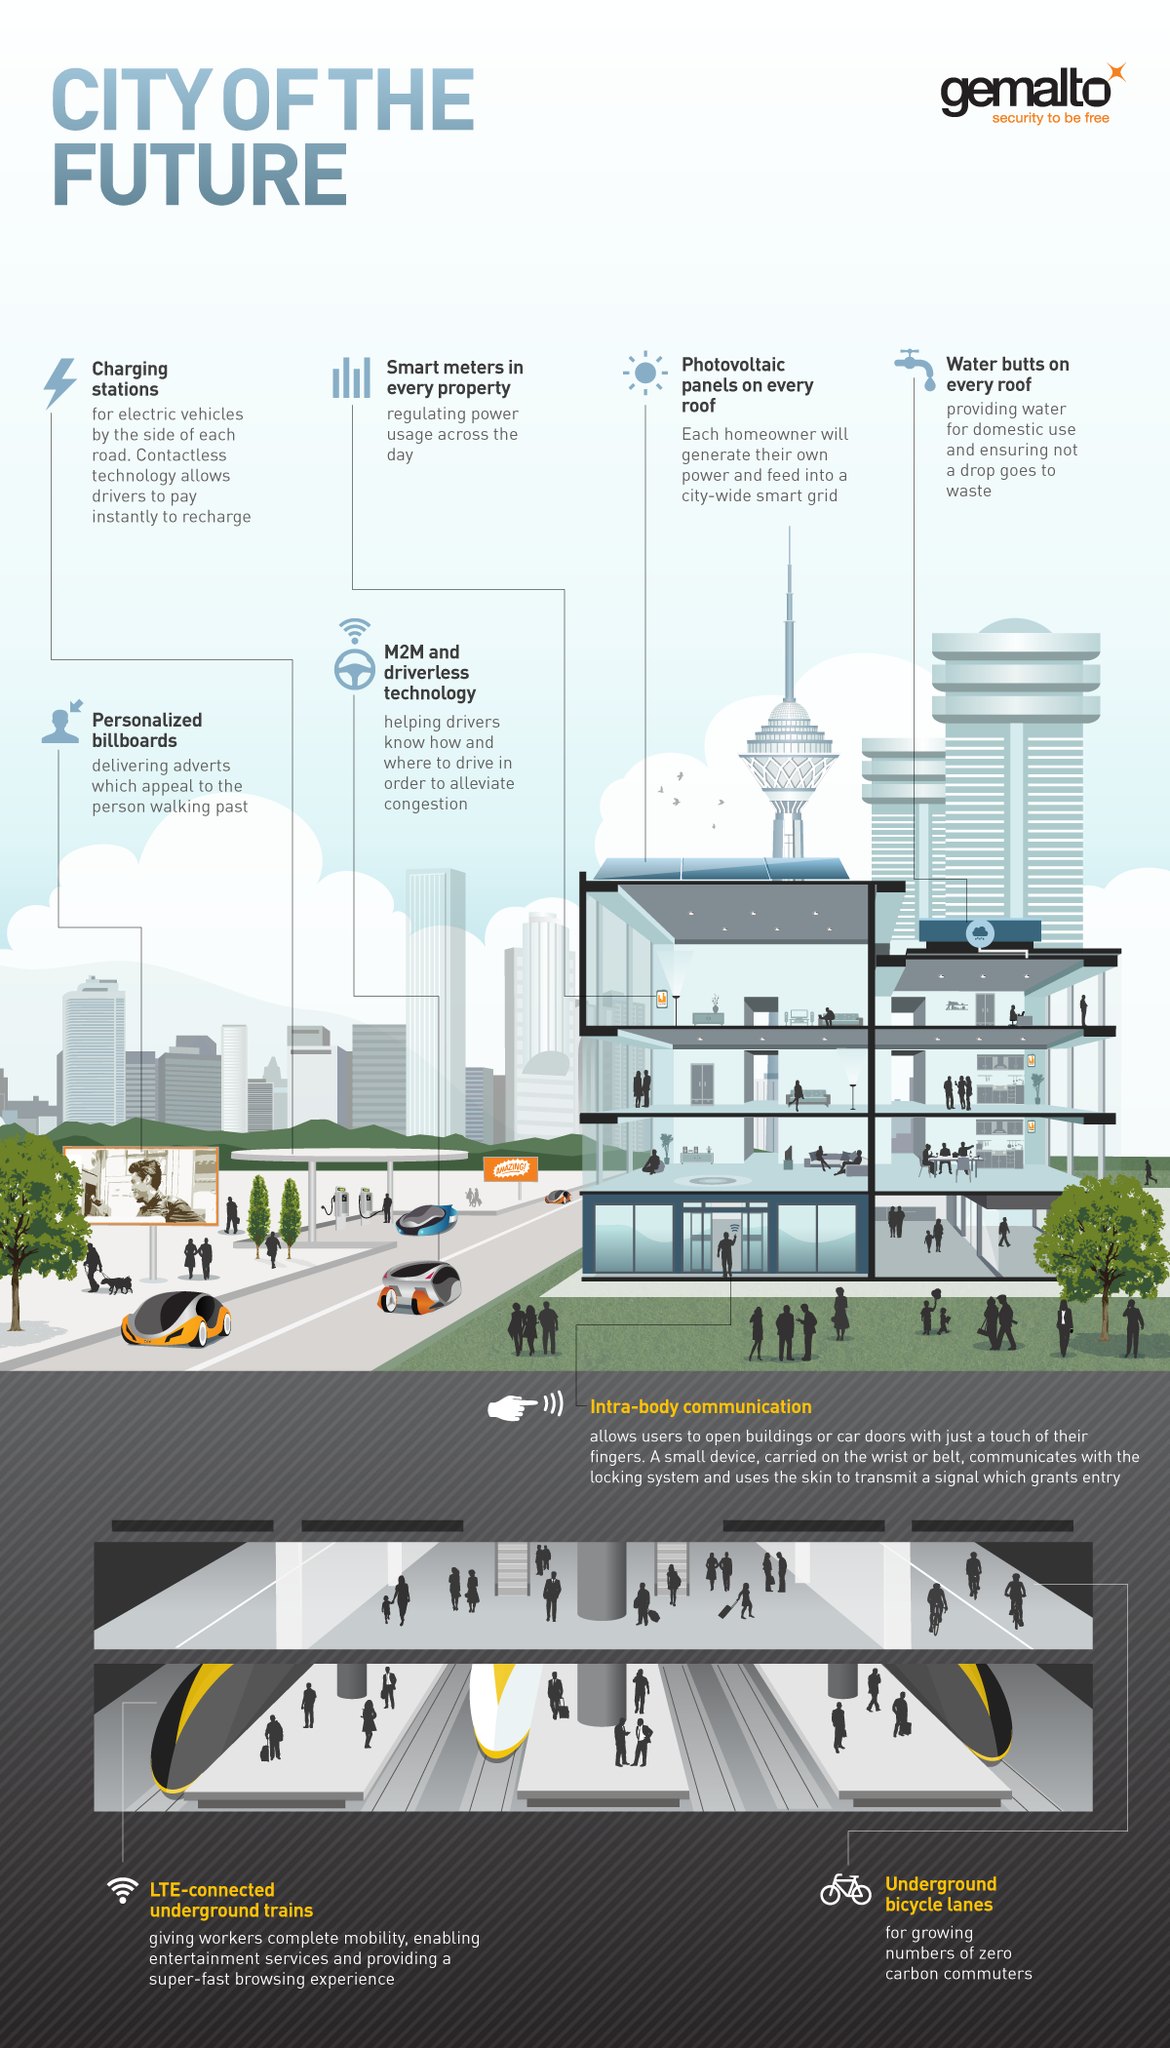 Nice infographic on a possible city of the future http://t.co/BtmHqKQp7w